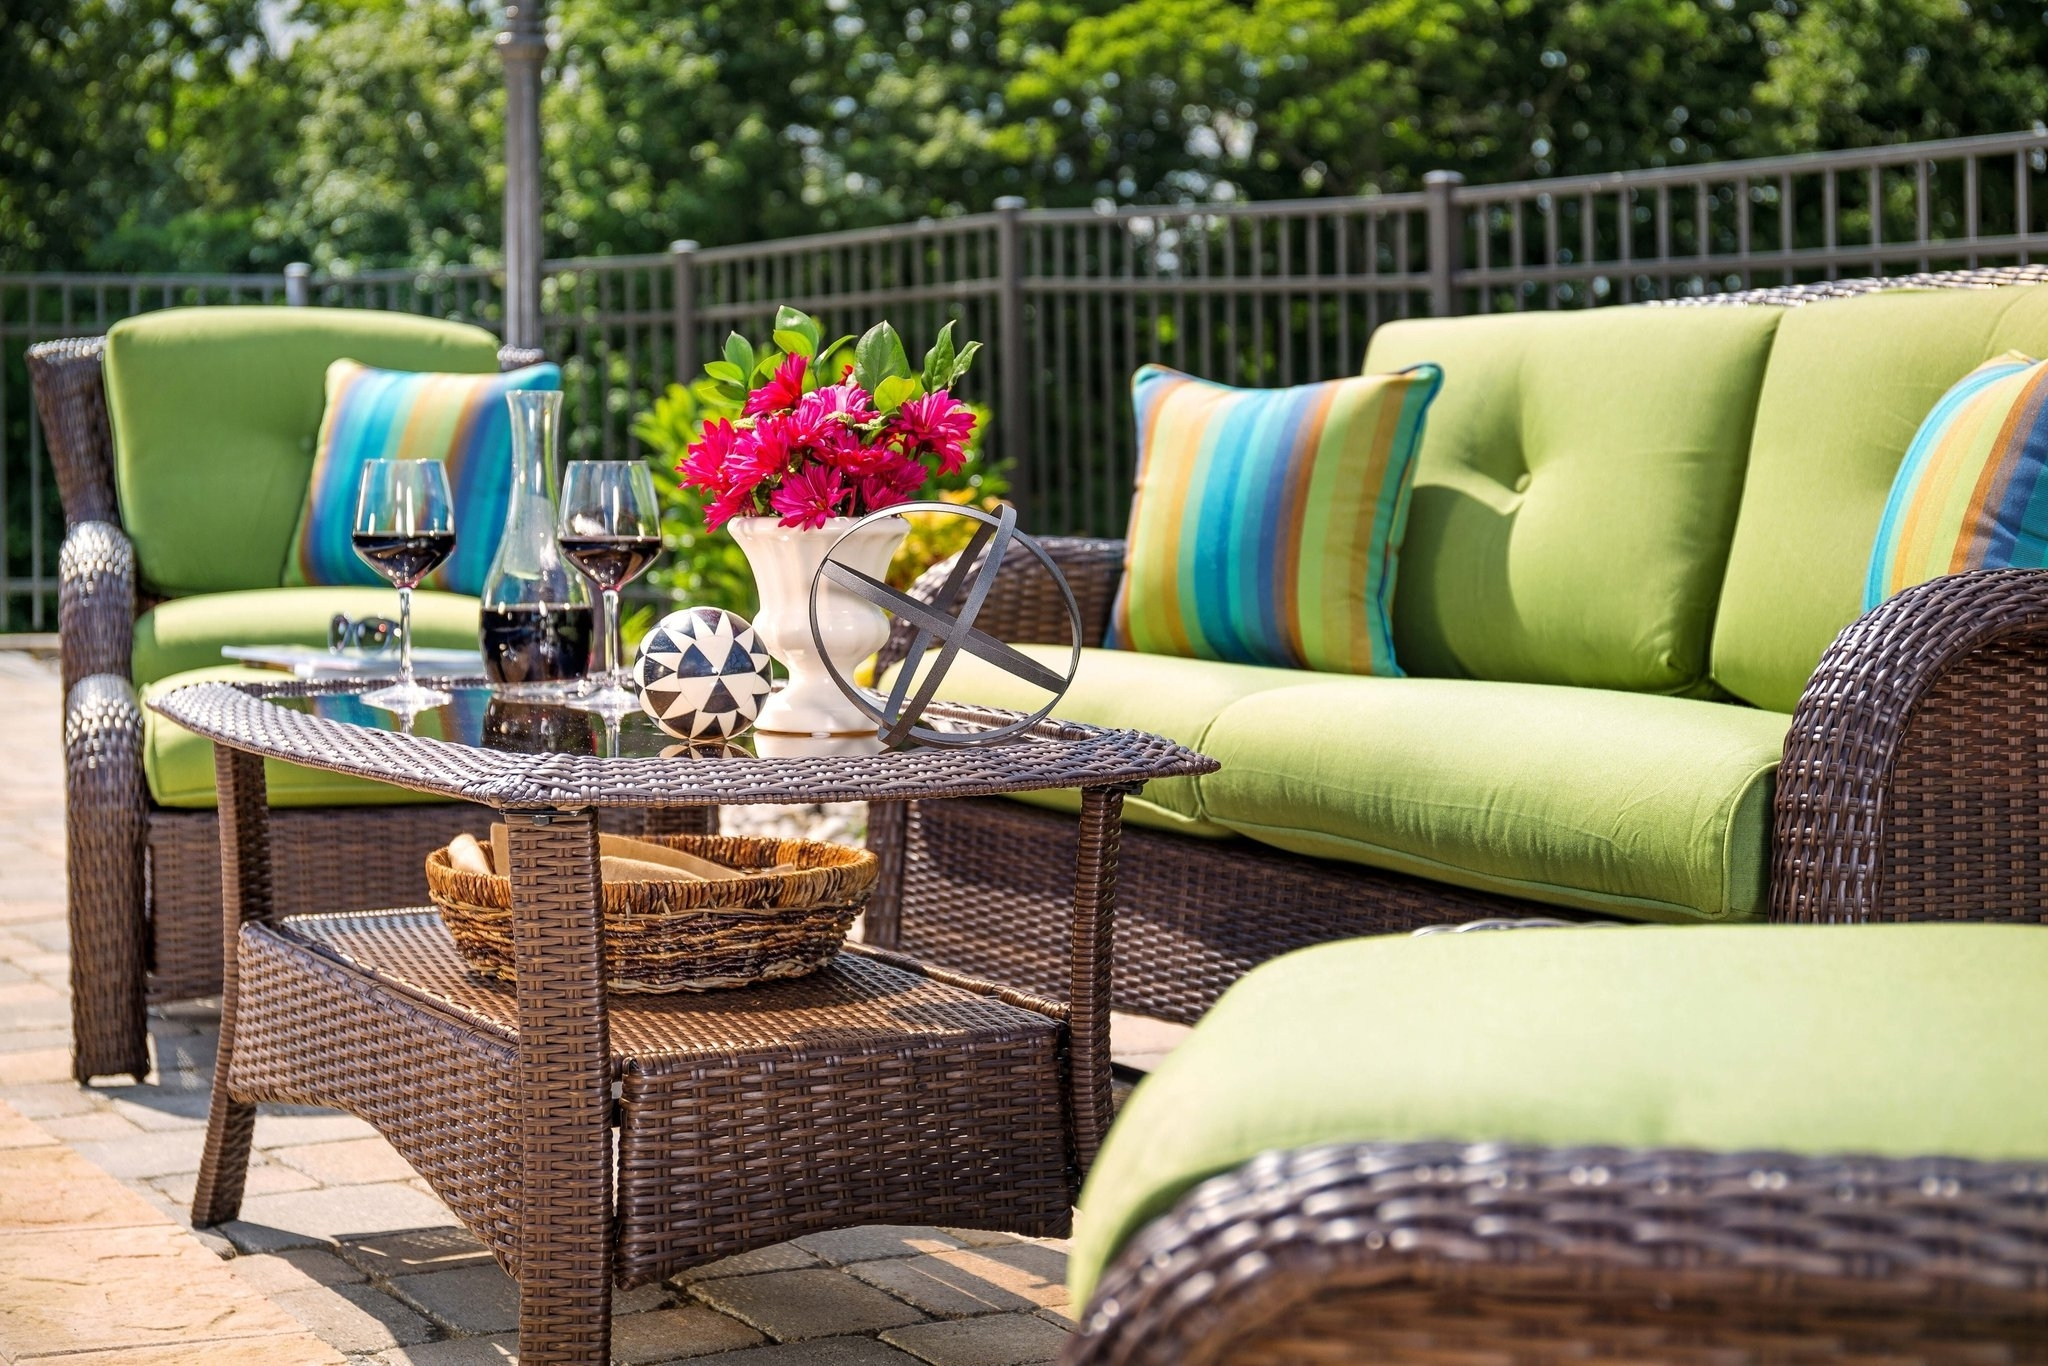 Cushion : Belham Living Meridian Round Outdoor Wicker Patio Intended For Most Up To Date Amazon Patio Furniture Conversation Sets (View 8 of 20)